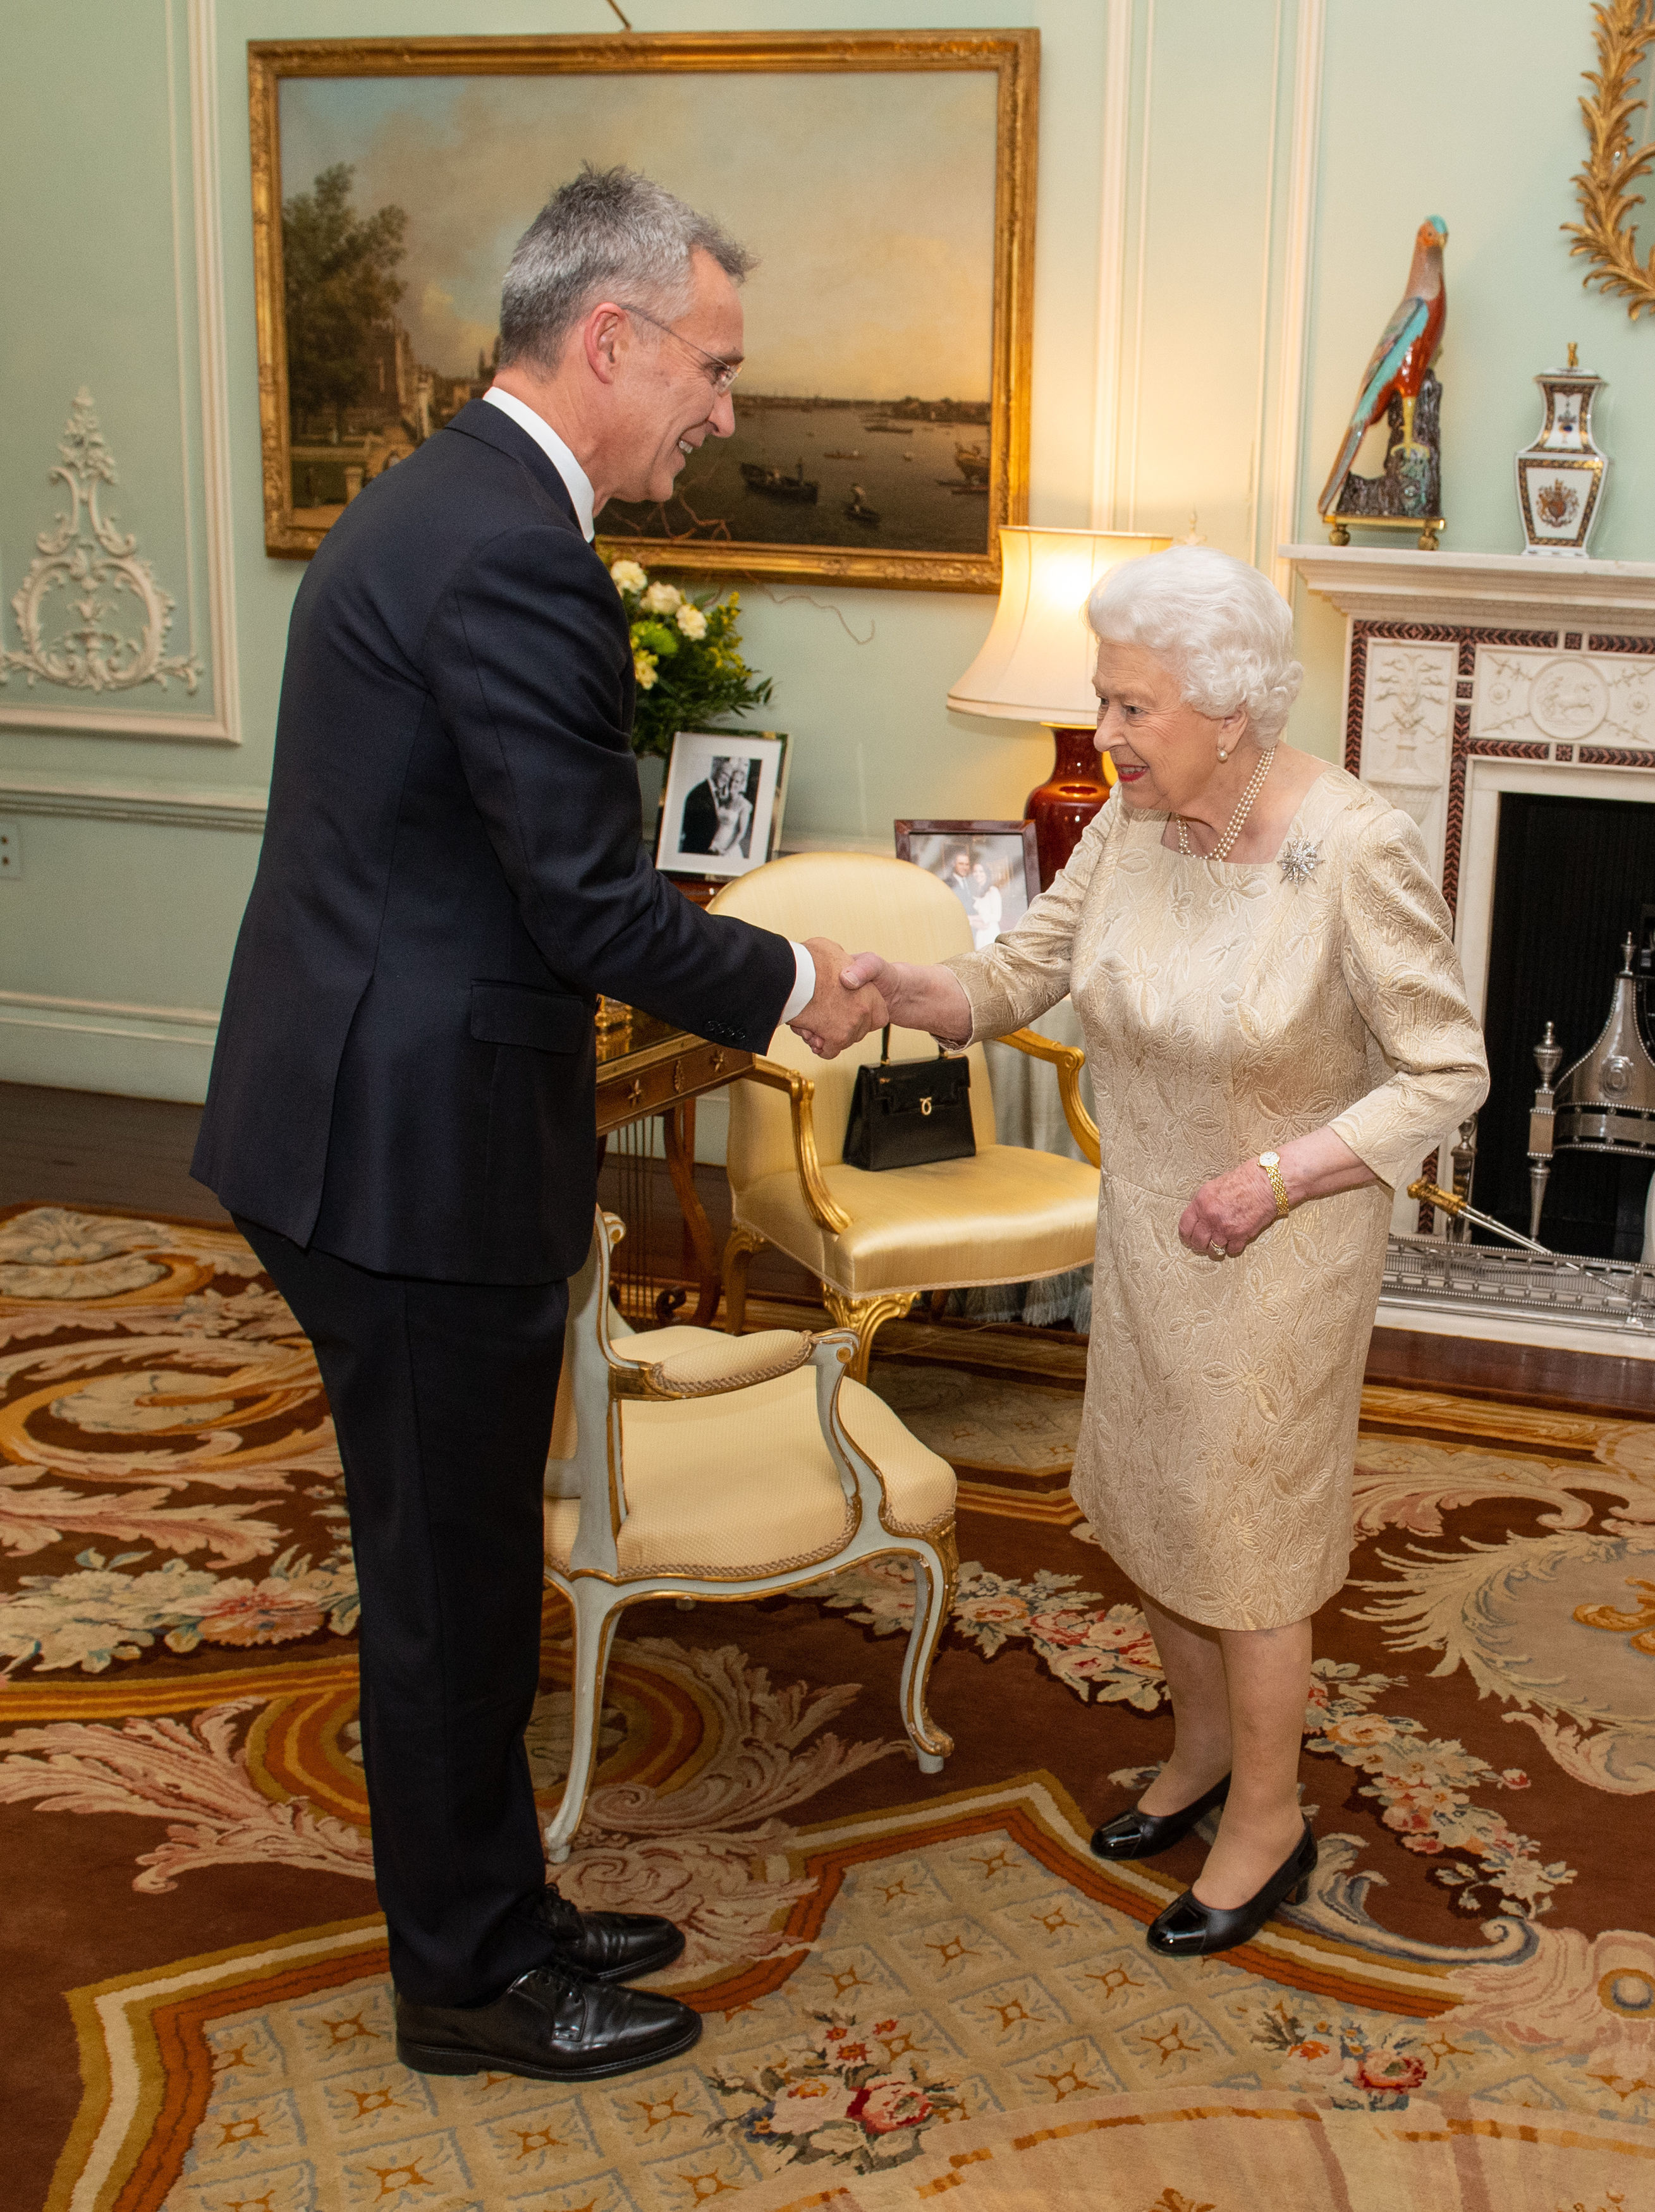 Queen Elizabeth II holds a private audience with Nato Secretary General Jens Stoltenberg in Buckingham Palace, London. PA Photo. Picture date: Tuesday December 3, 2019. Photo credit should read: Dominic Lipinski/PA Wire